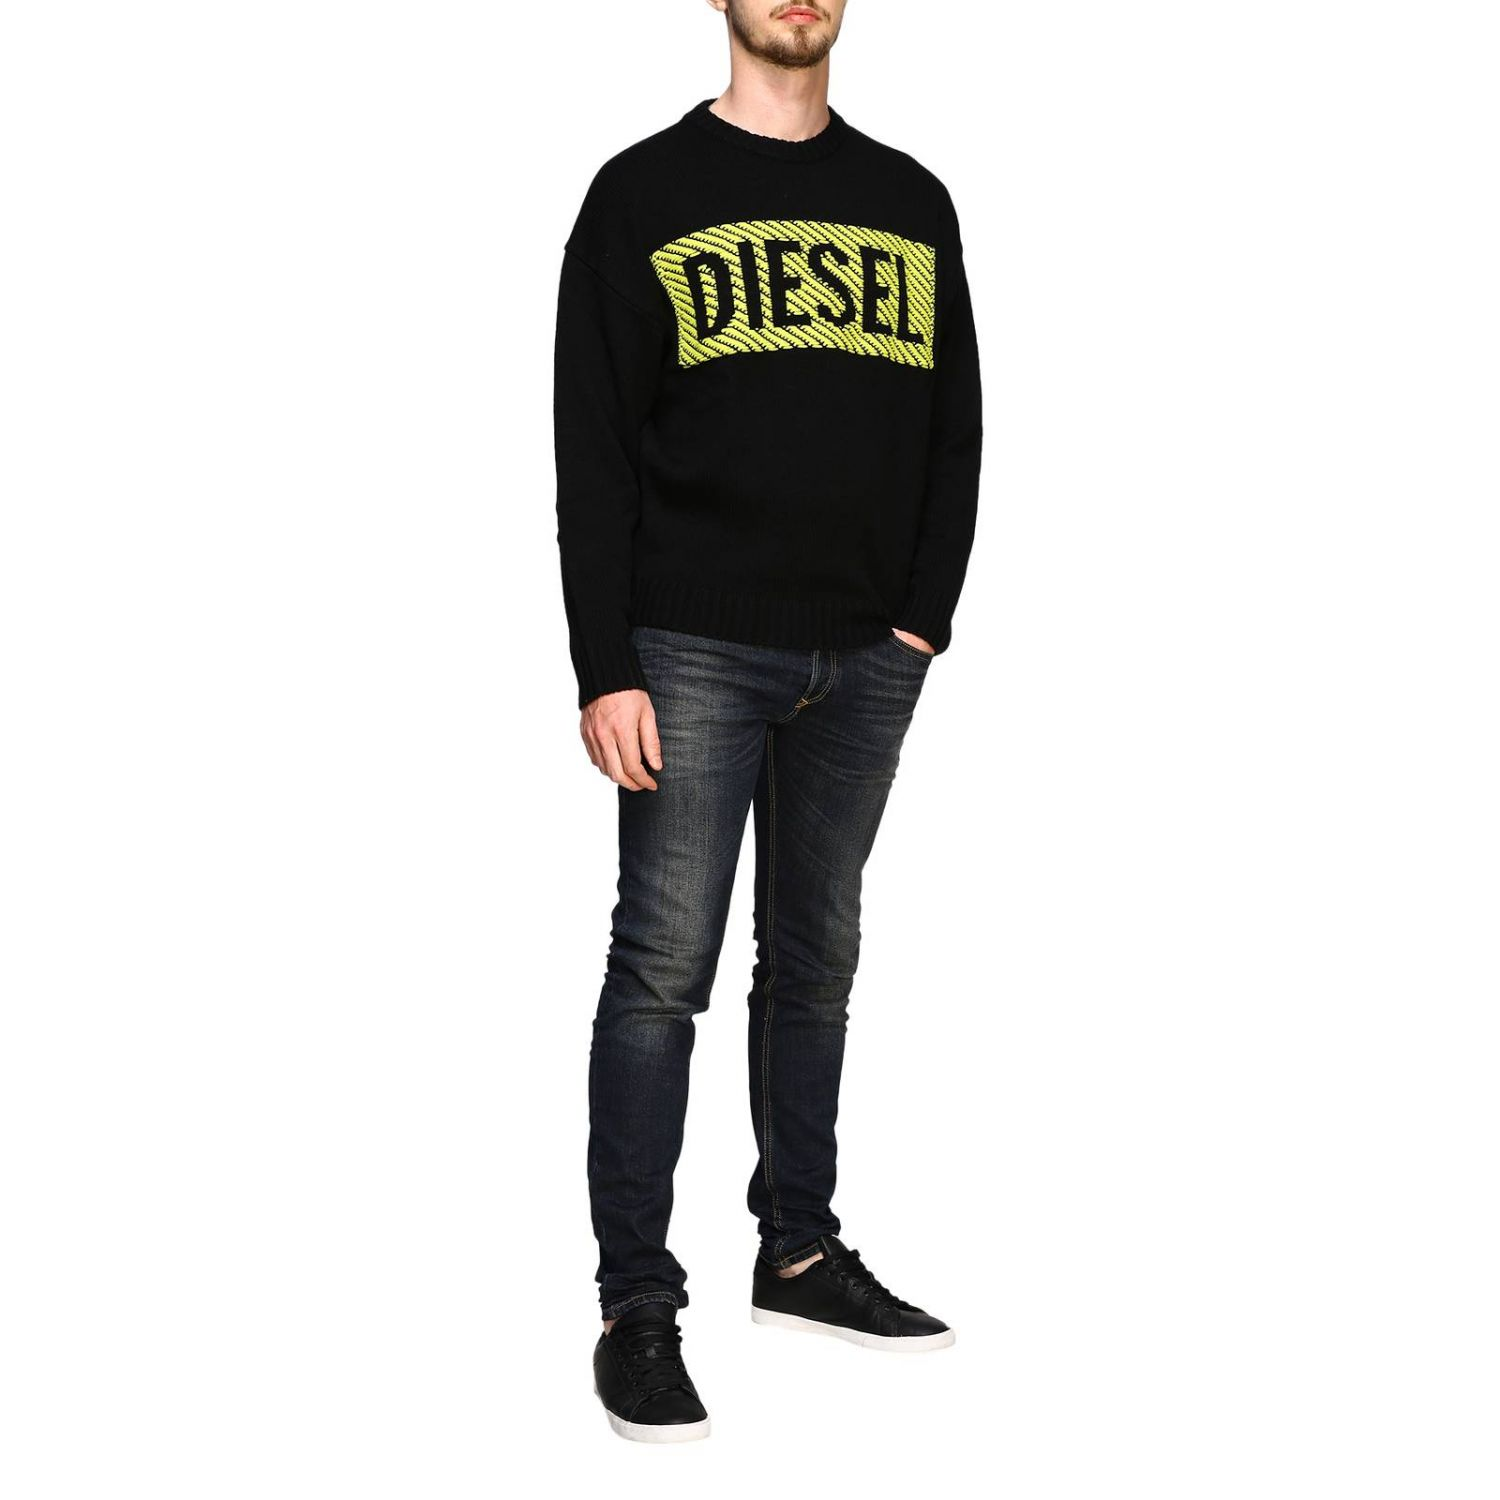 Diesel crew neck pullover with maxi logo black 2